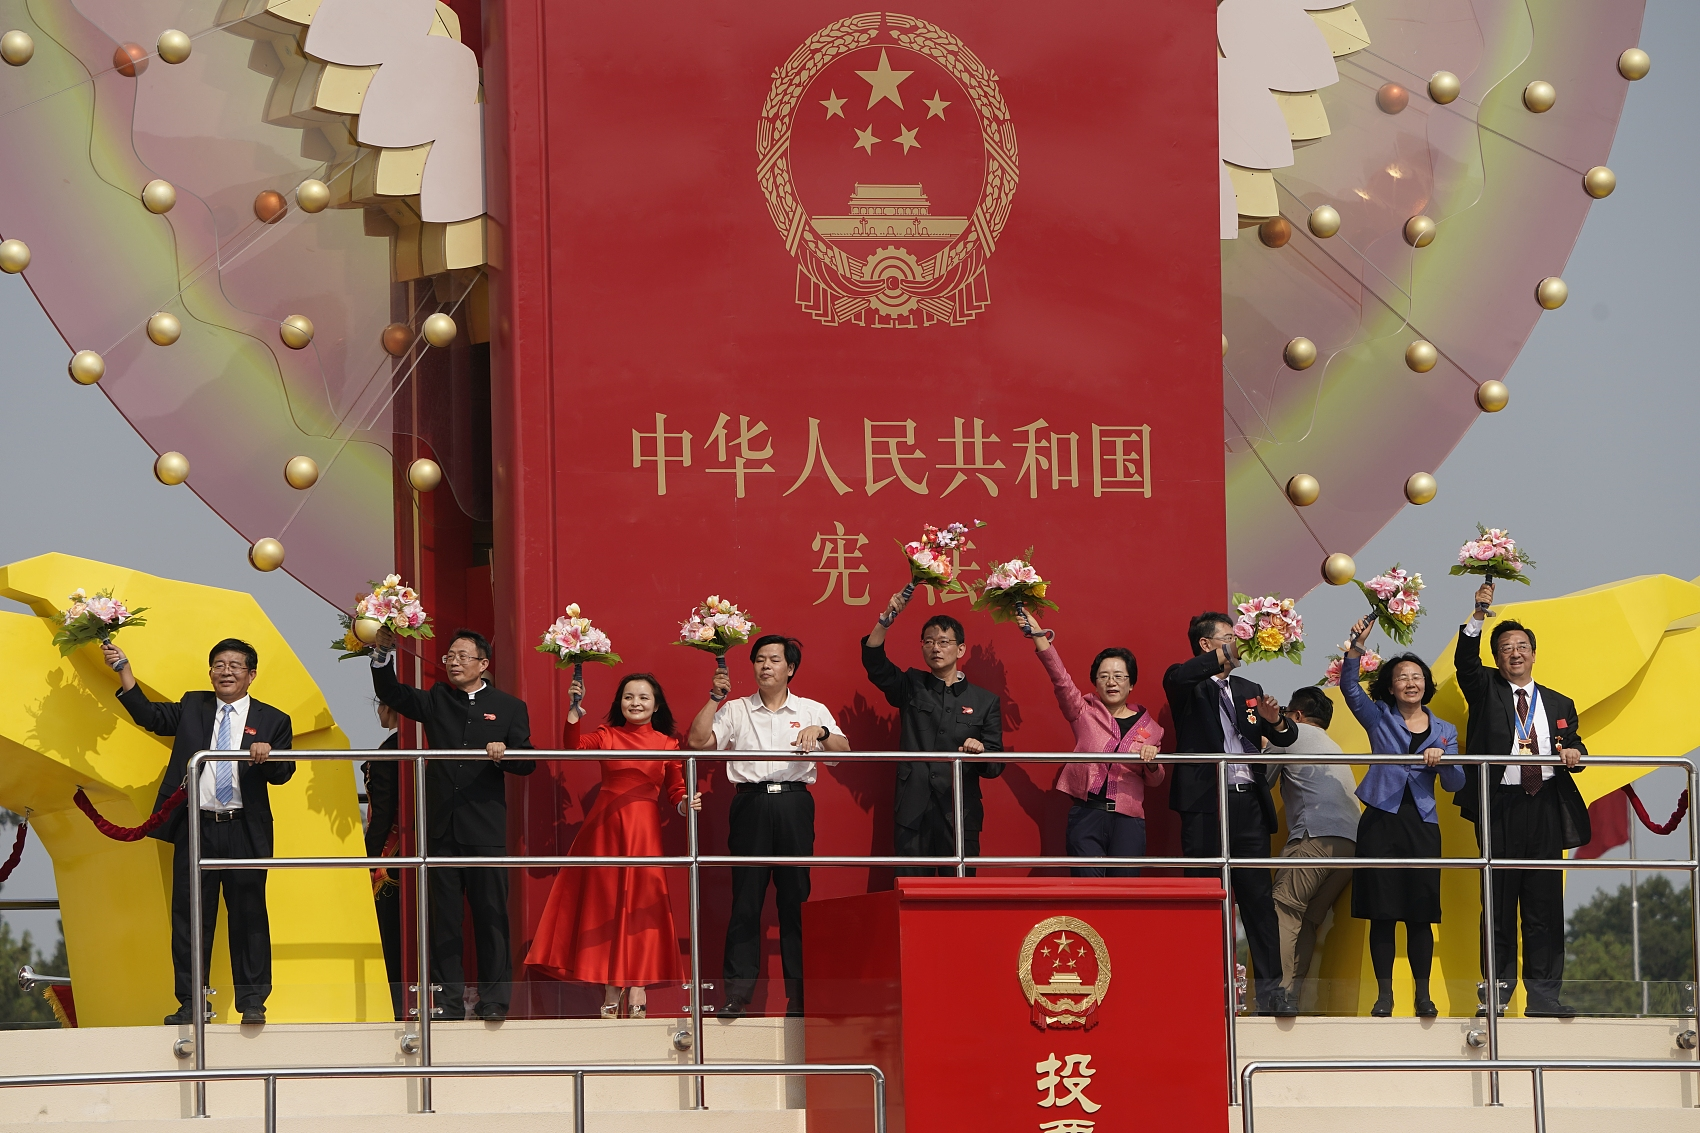 Xi's article on rule of law to be published